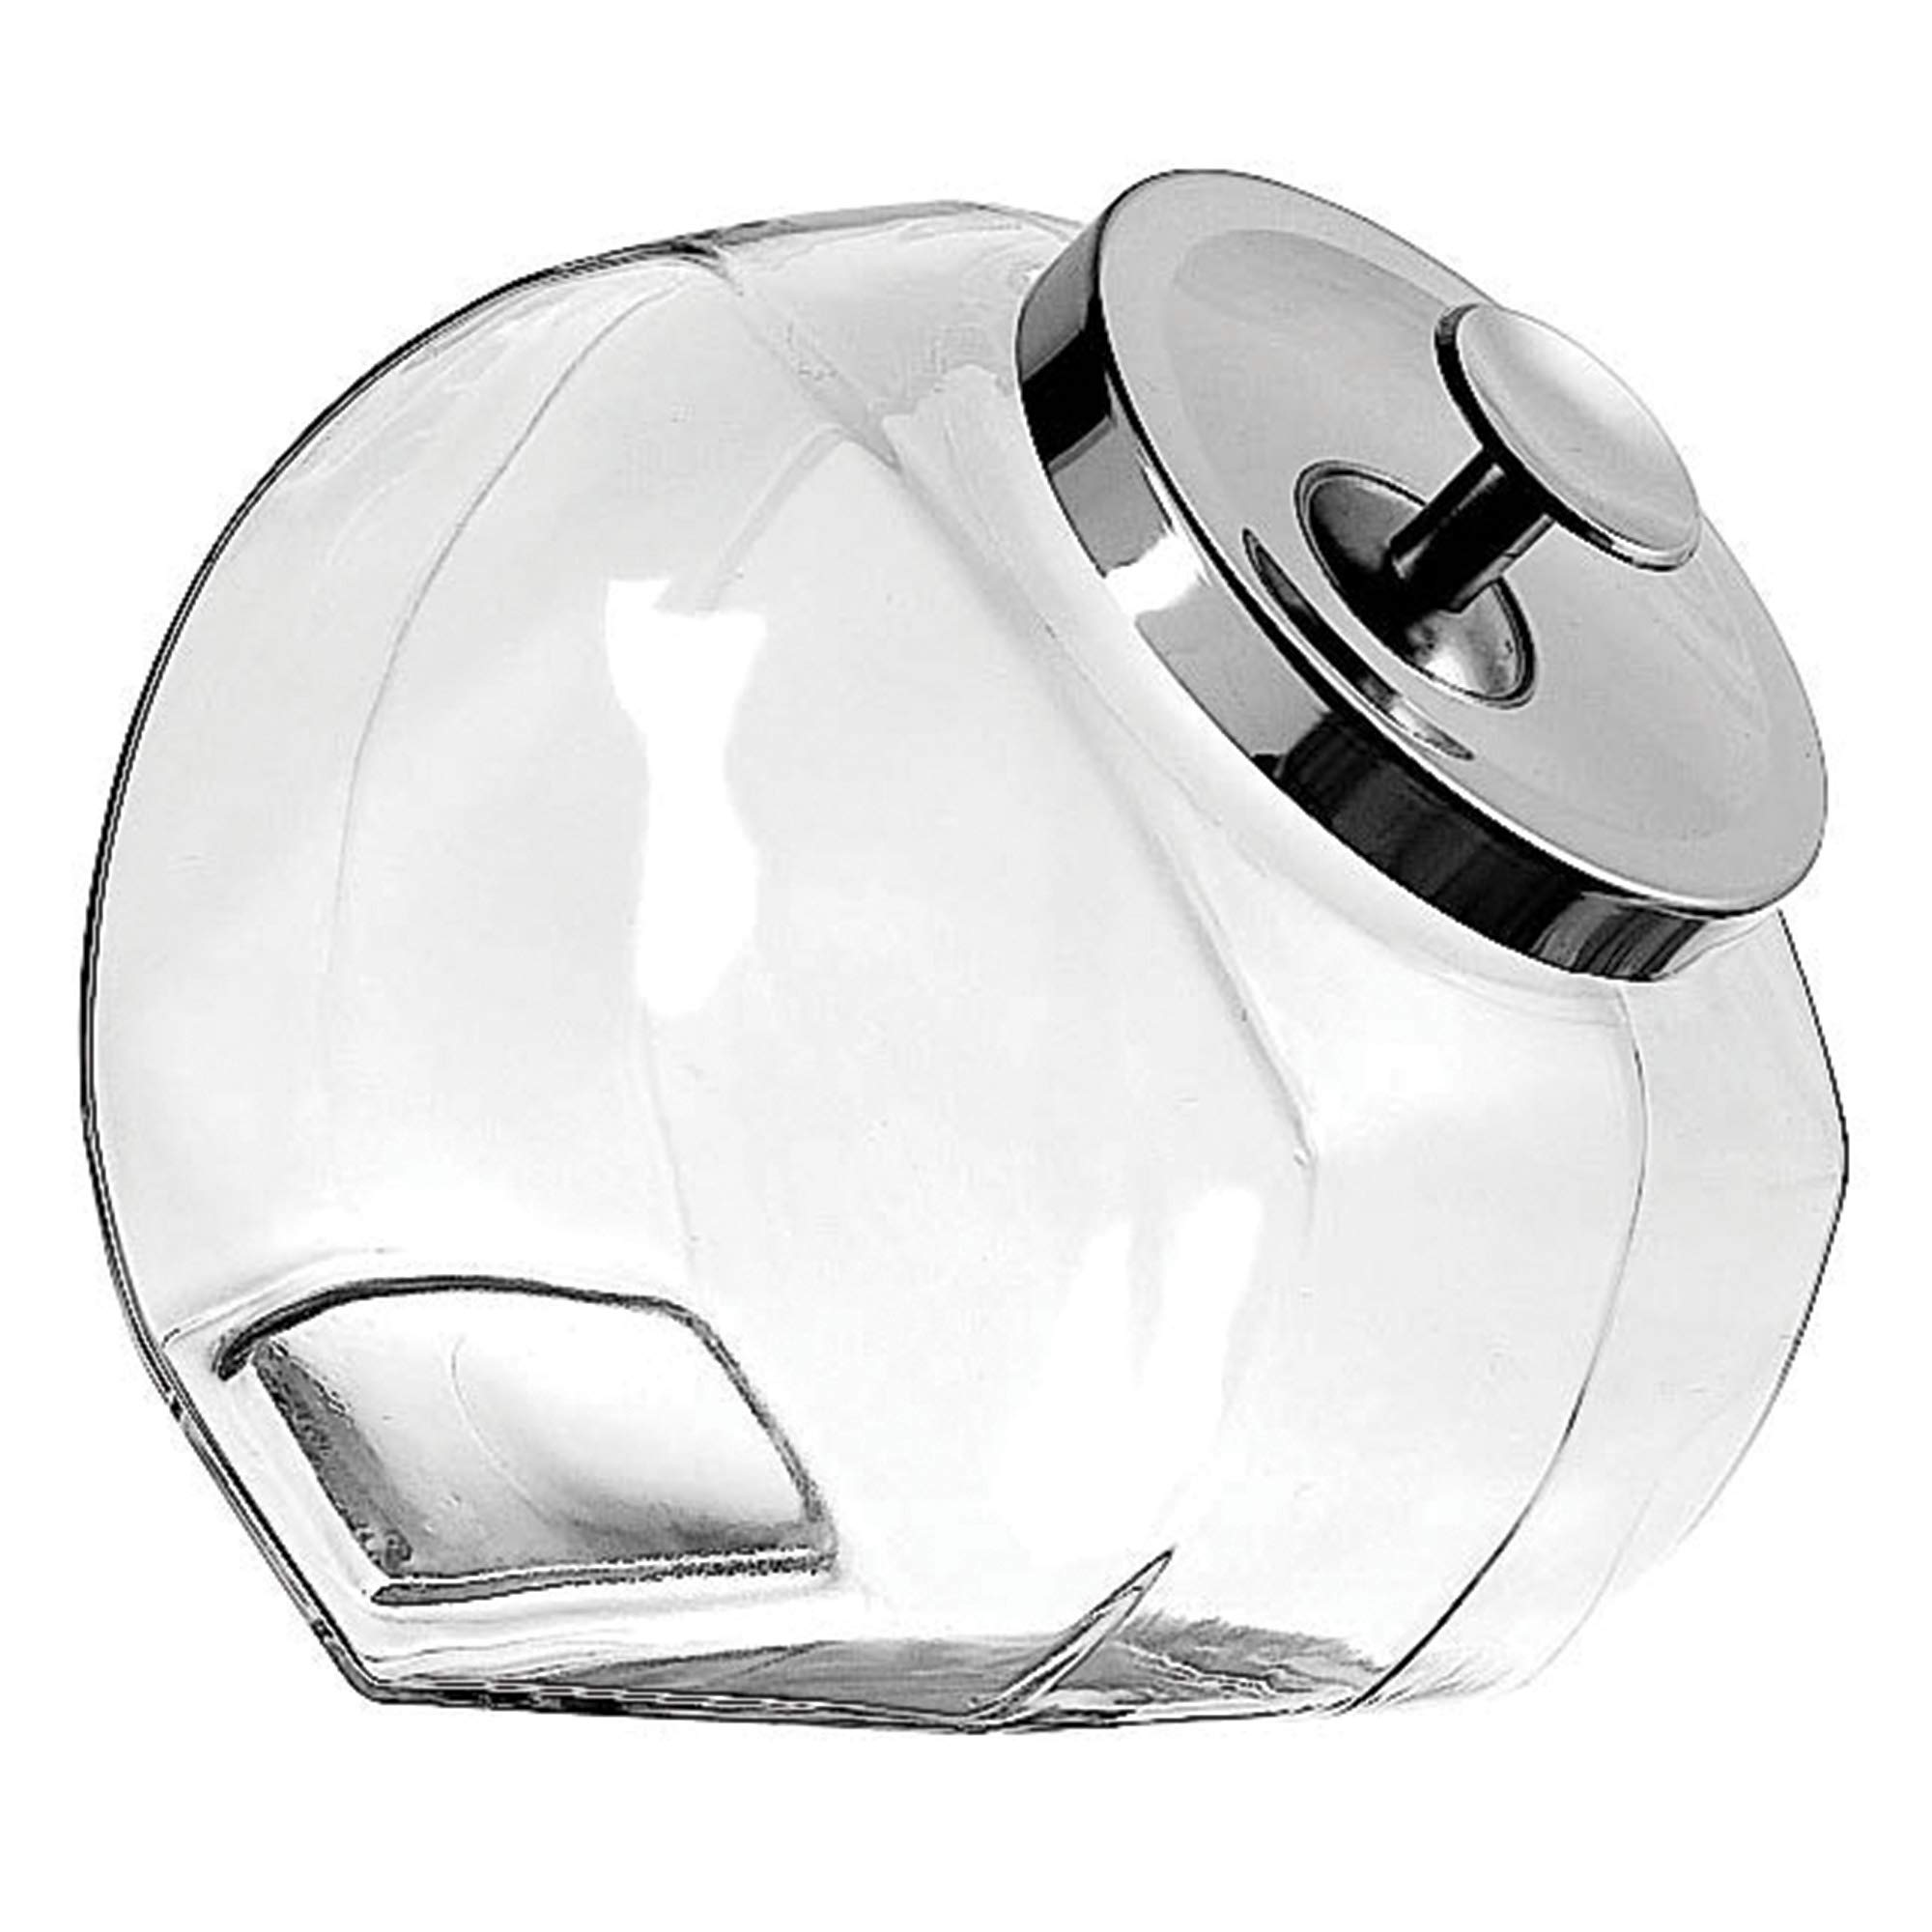 Anchor Hocking Available Anchor 77899 Penny Candy Jar, 1-Gallon, Clear by Anchor Hocking